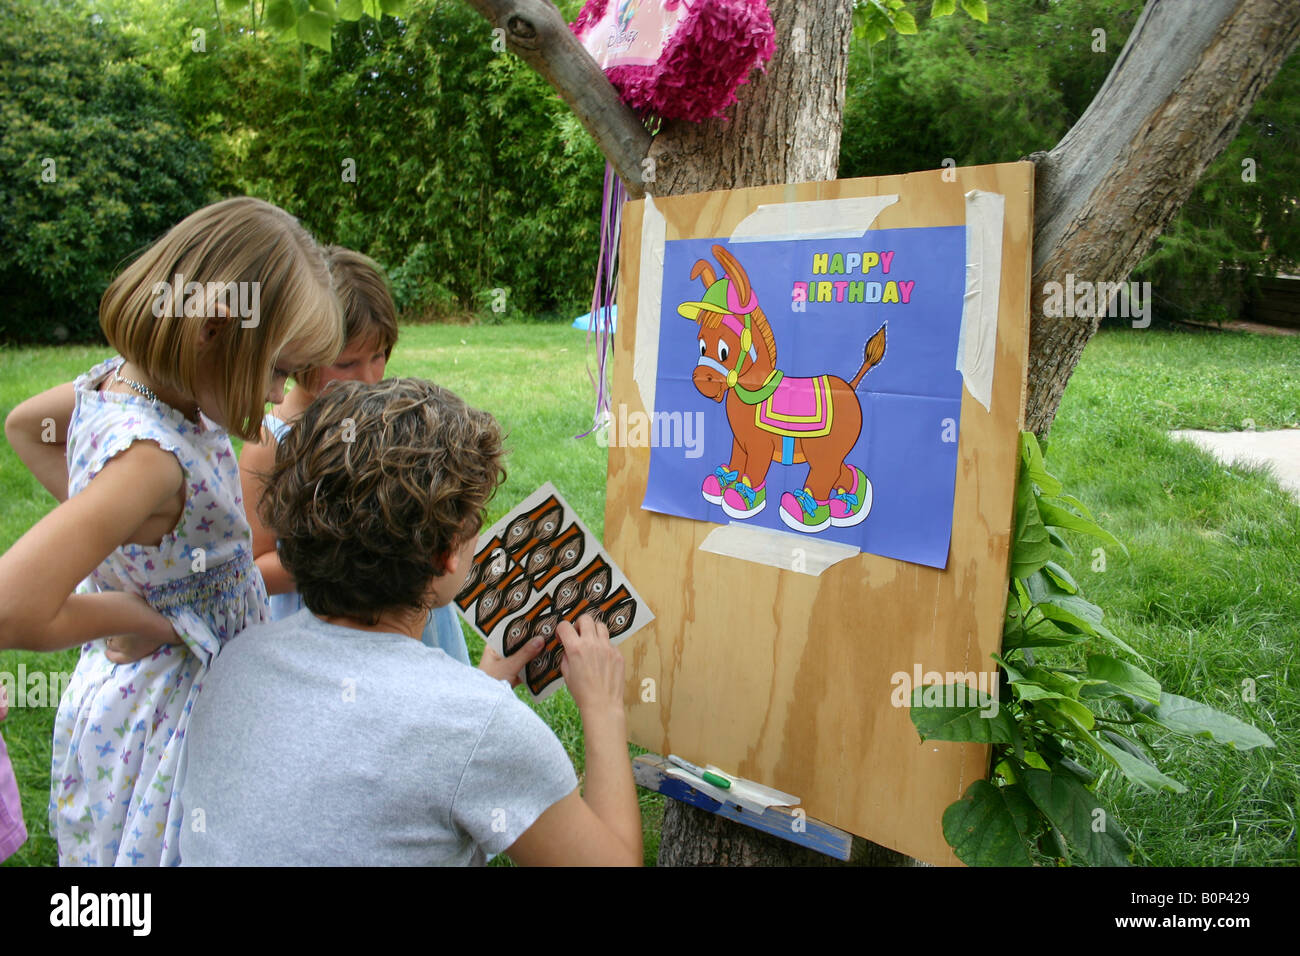 Child And Parent Setting Up Birthday Party Game Pin The Tail On Donkey In Backyard